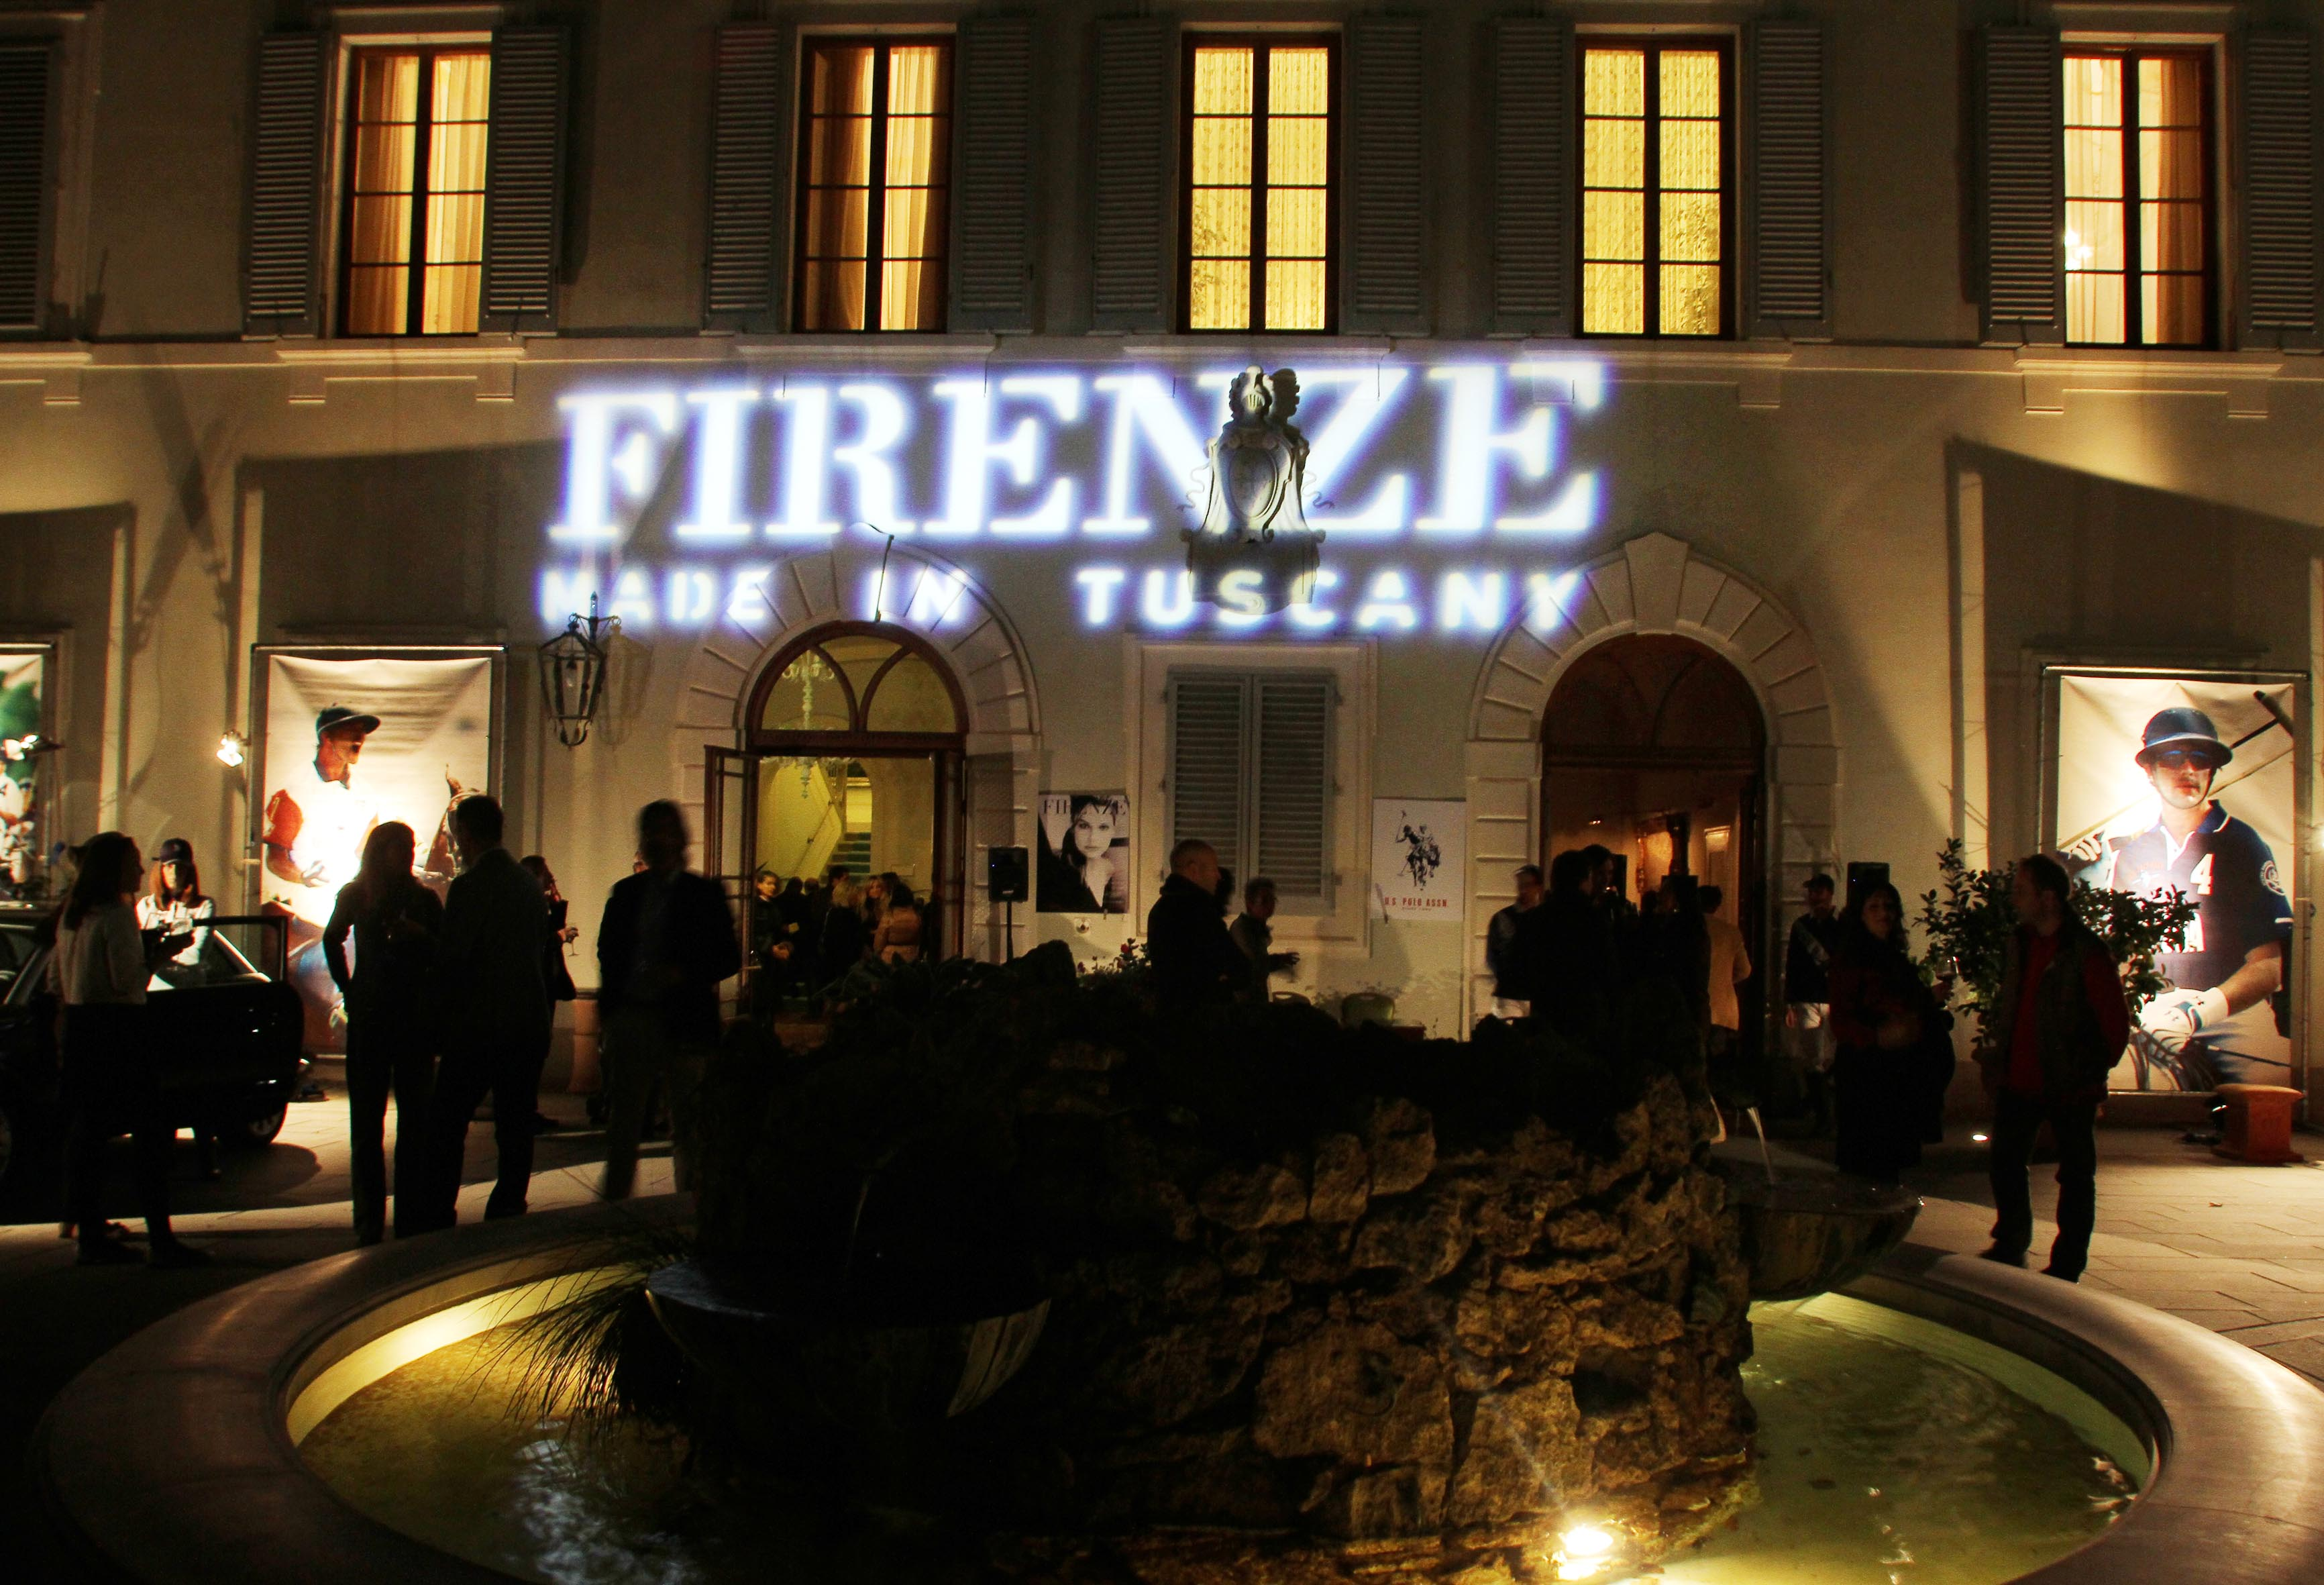 Presentazione Firenze Made in Tuscany n. 16